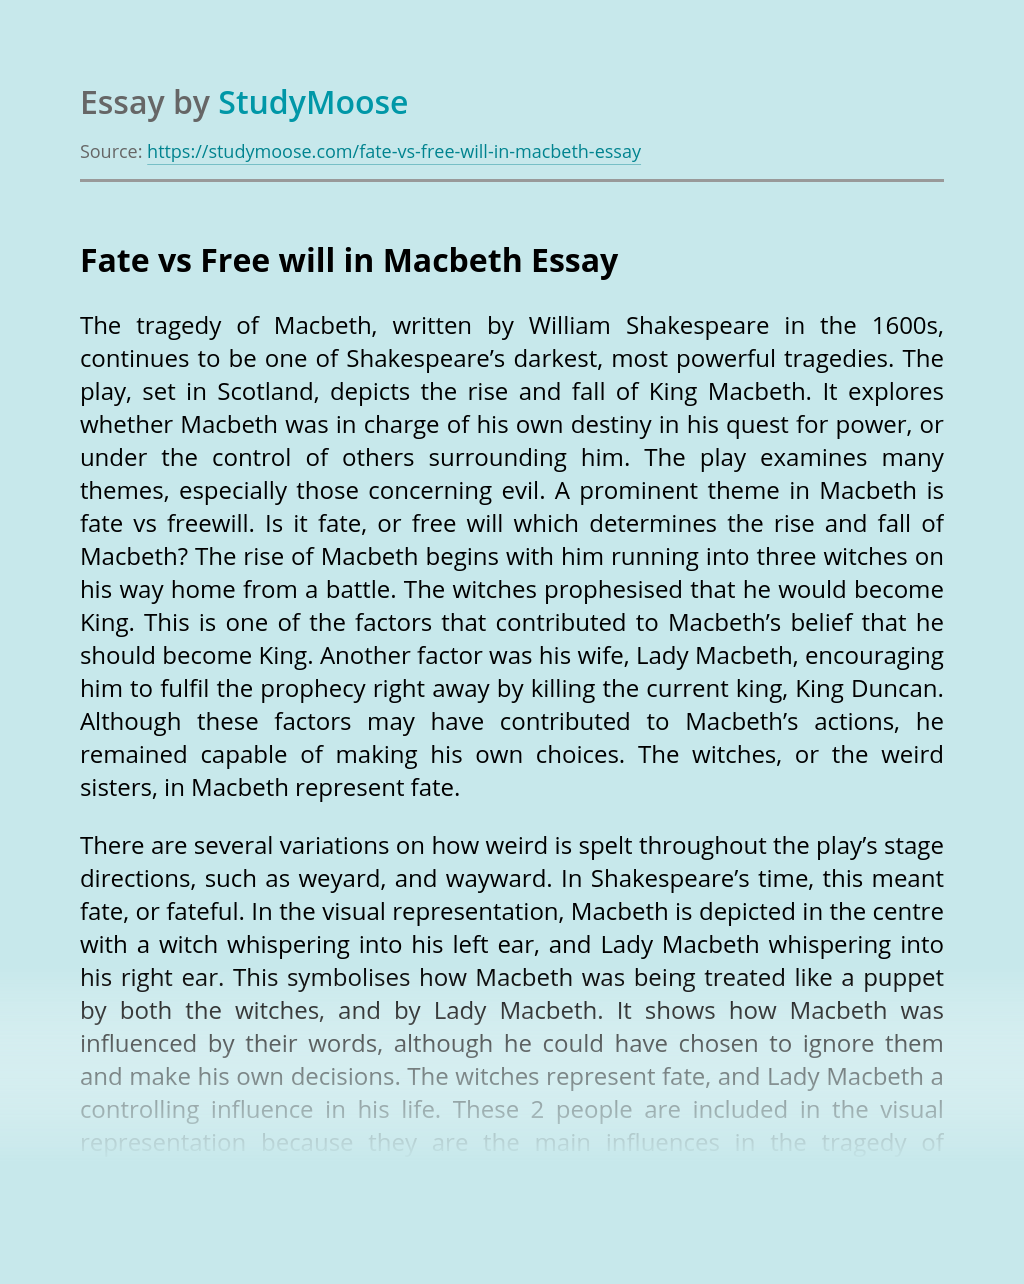 Macbeth essay questions fate pay to do u.s. history and government curriculum vitae